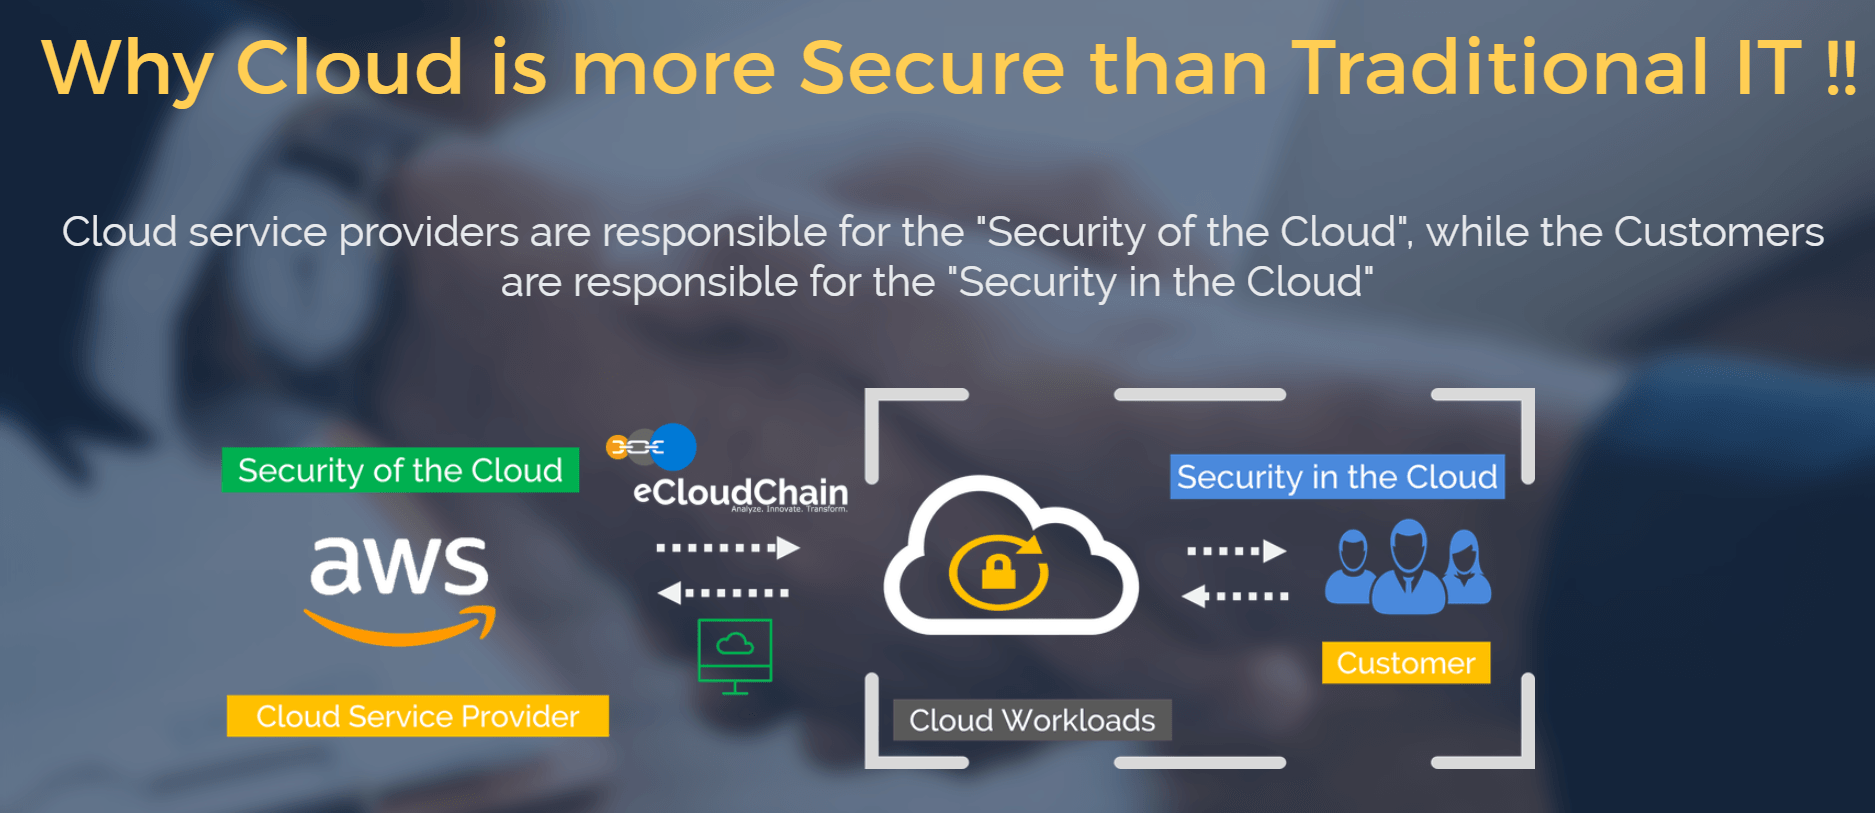 eCloudChain Security 2